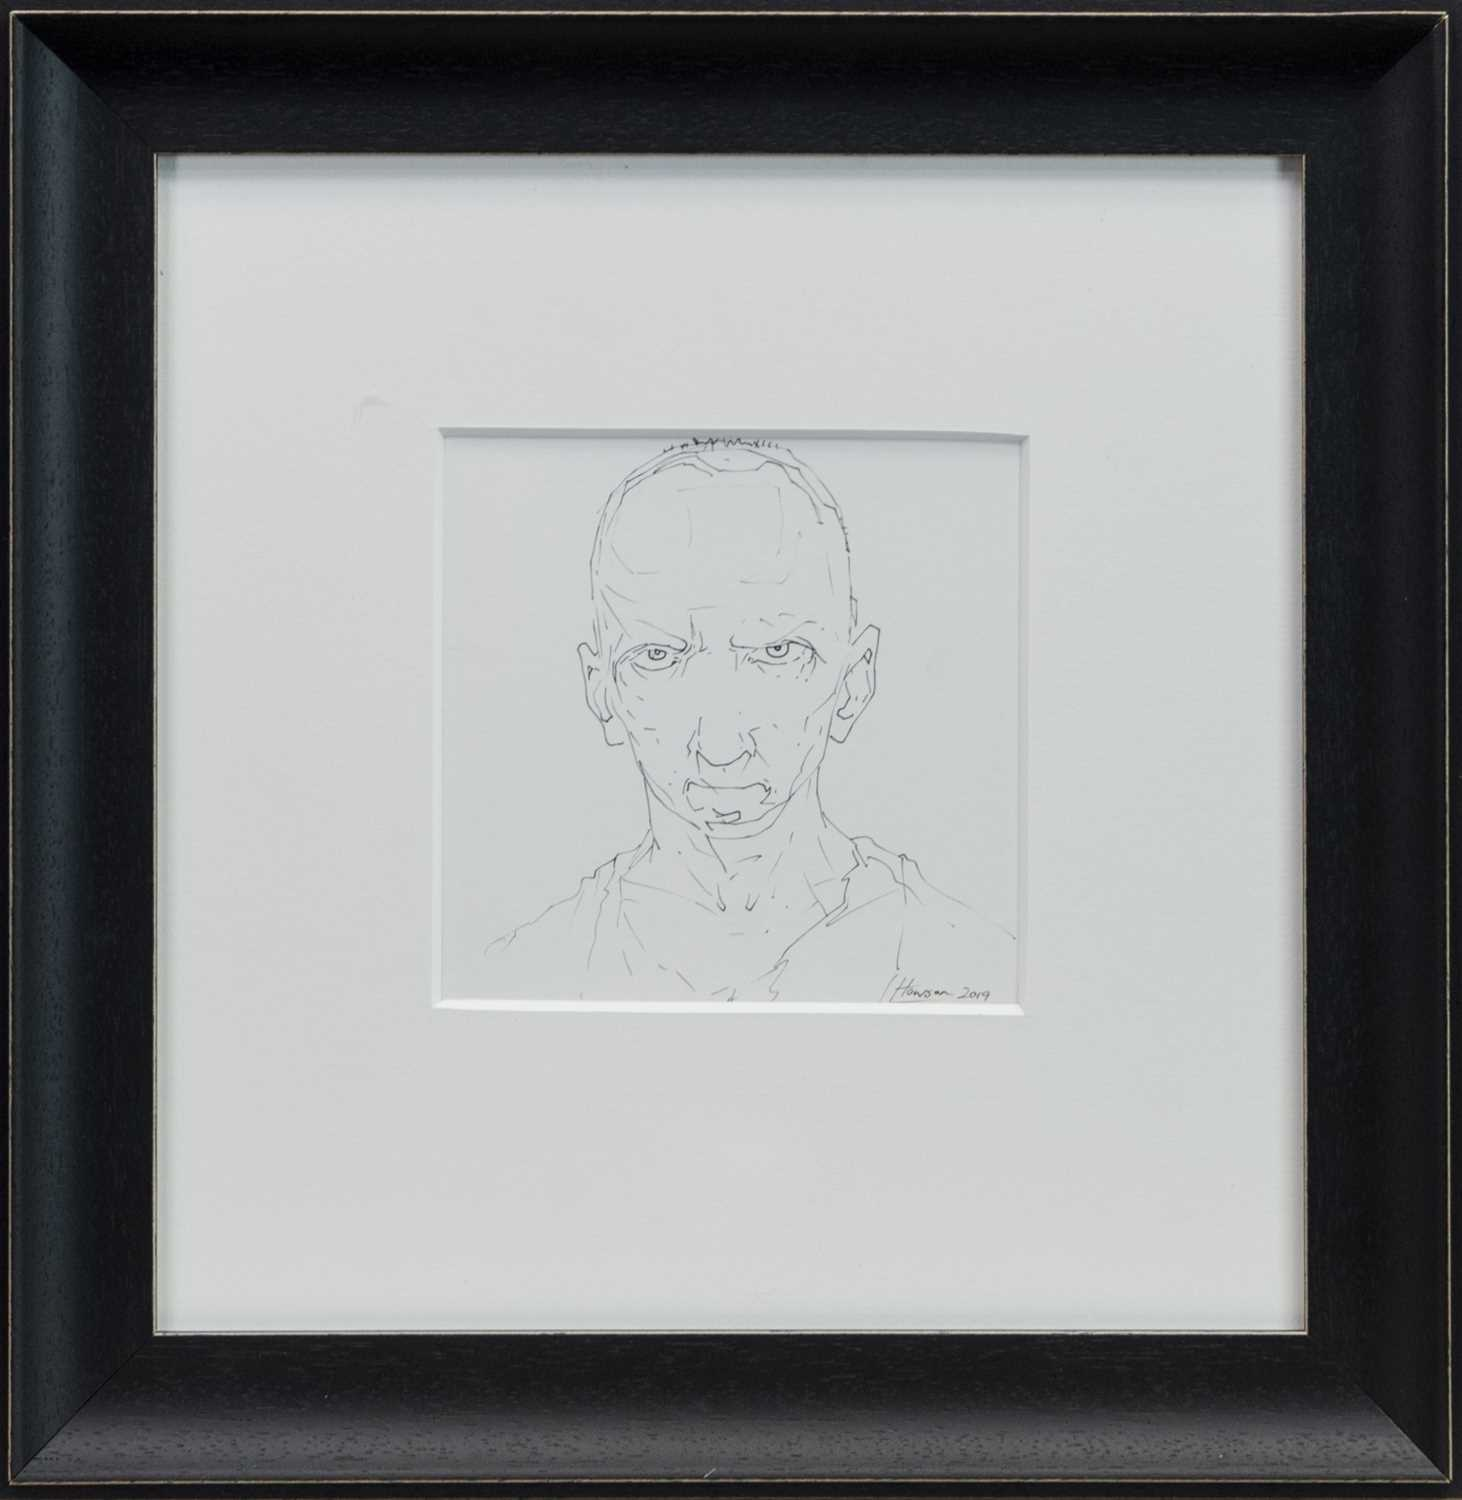 Lot 747 - AN UNTITLED INK SKETCH BY PETER HOWSON